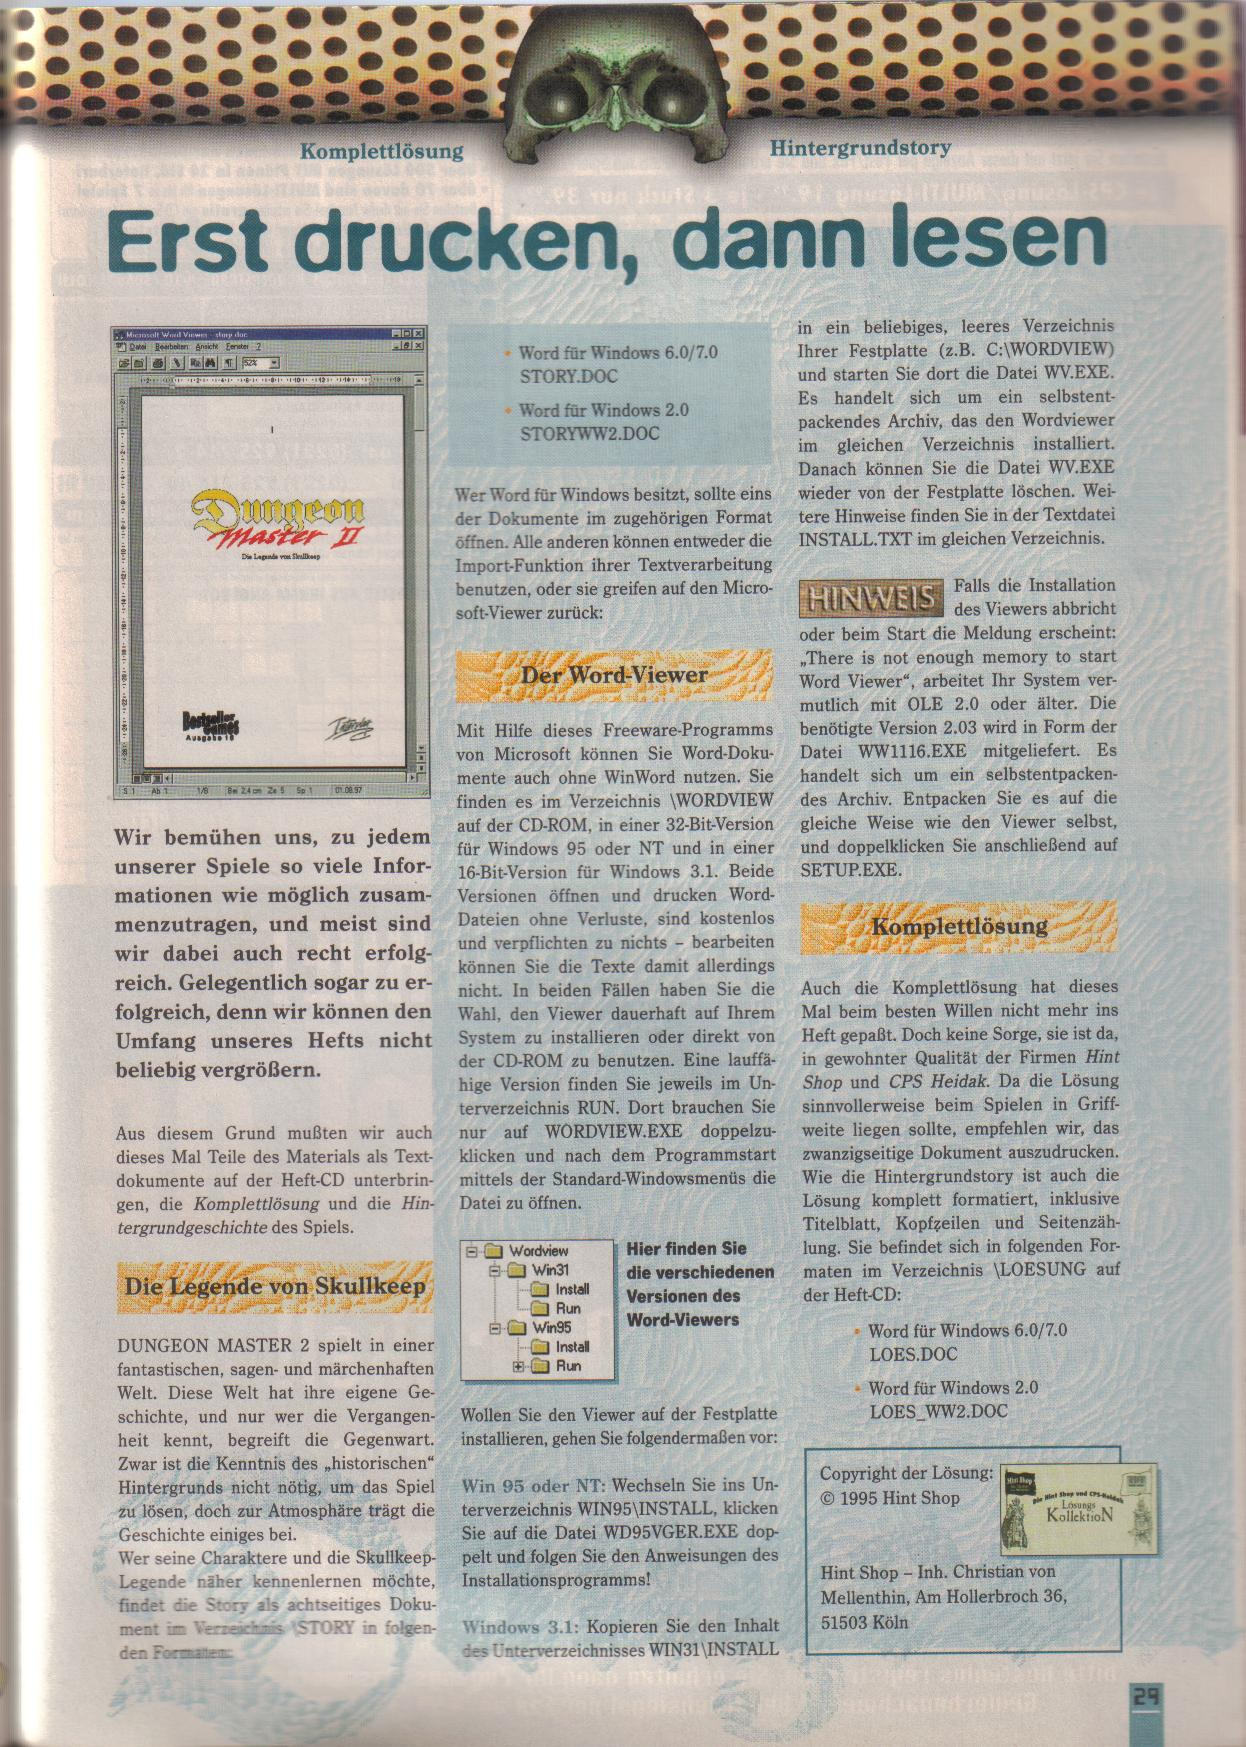 Dungeon Master II for PC (German, Best Seller Games) Page 29